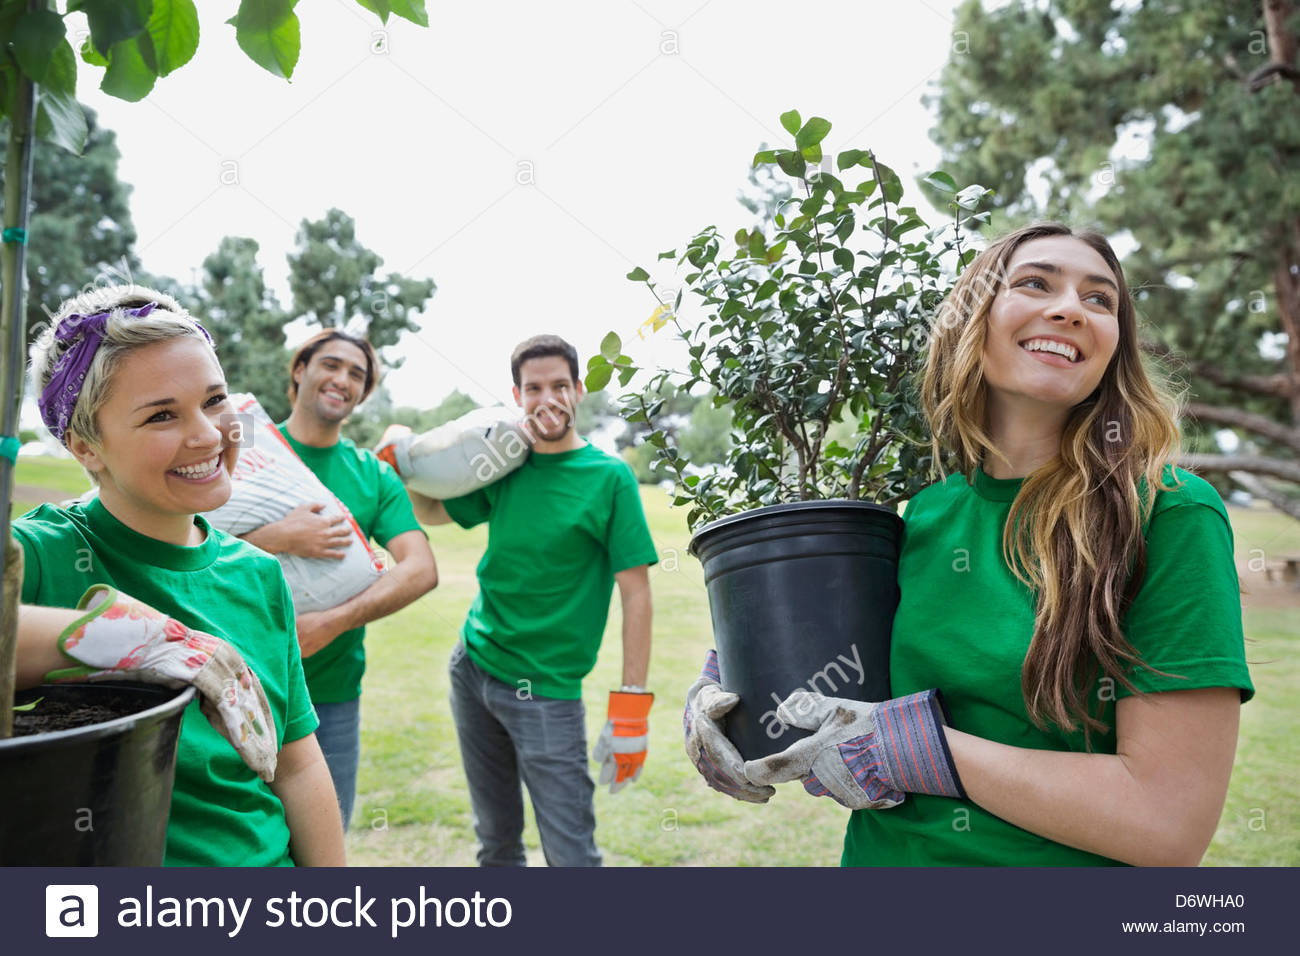 Happy environmentalists with potted plants and soil sacks at park - Stock Image